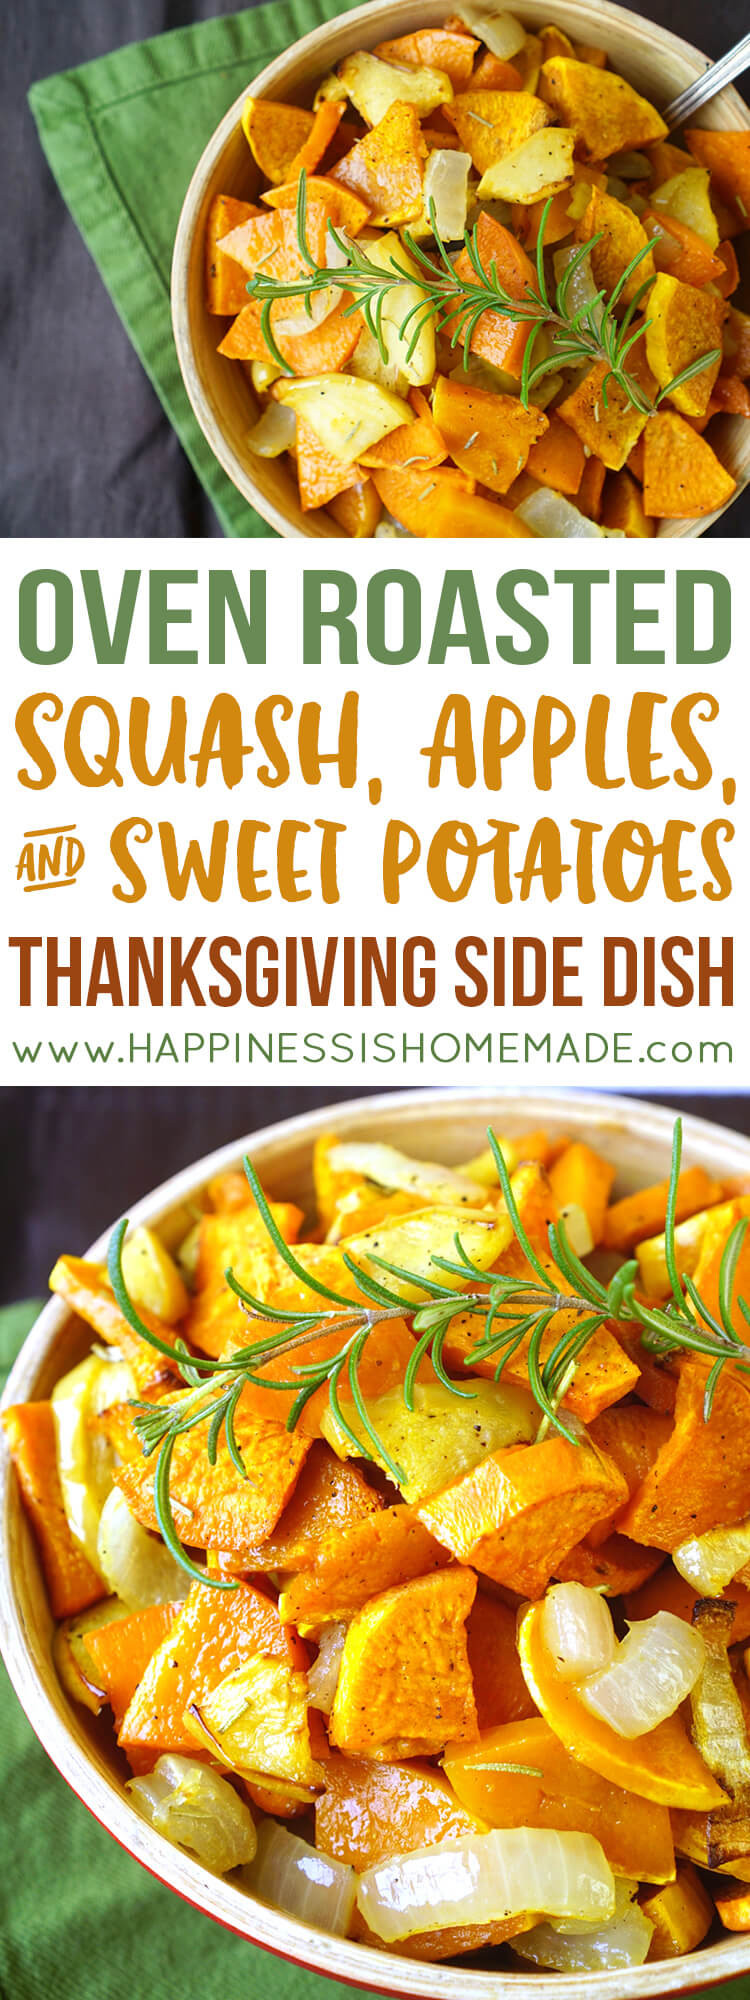 Thanksgiving Roasted Sweet Potatoes  Roasted Sweet Potatoes Squash & Apples Happiness is